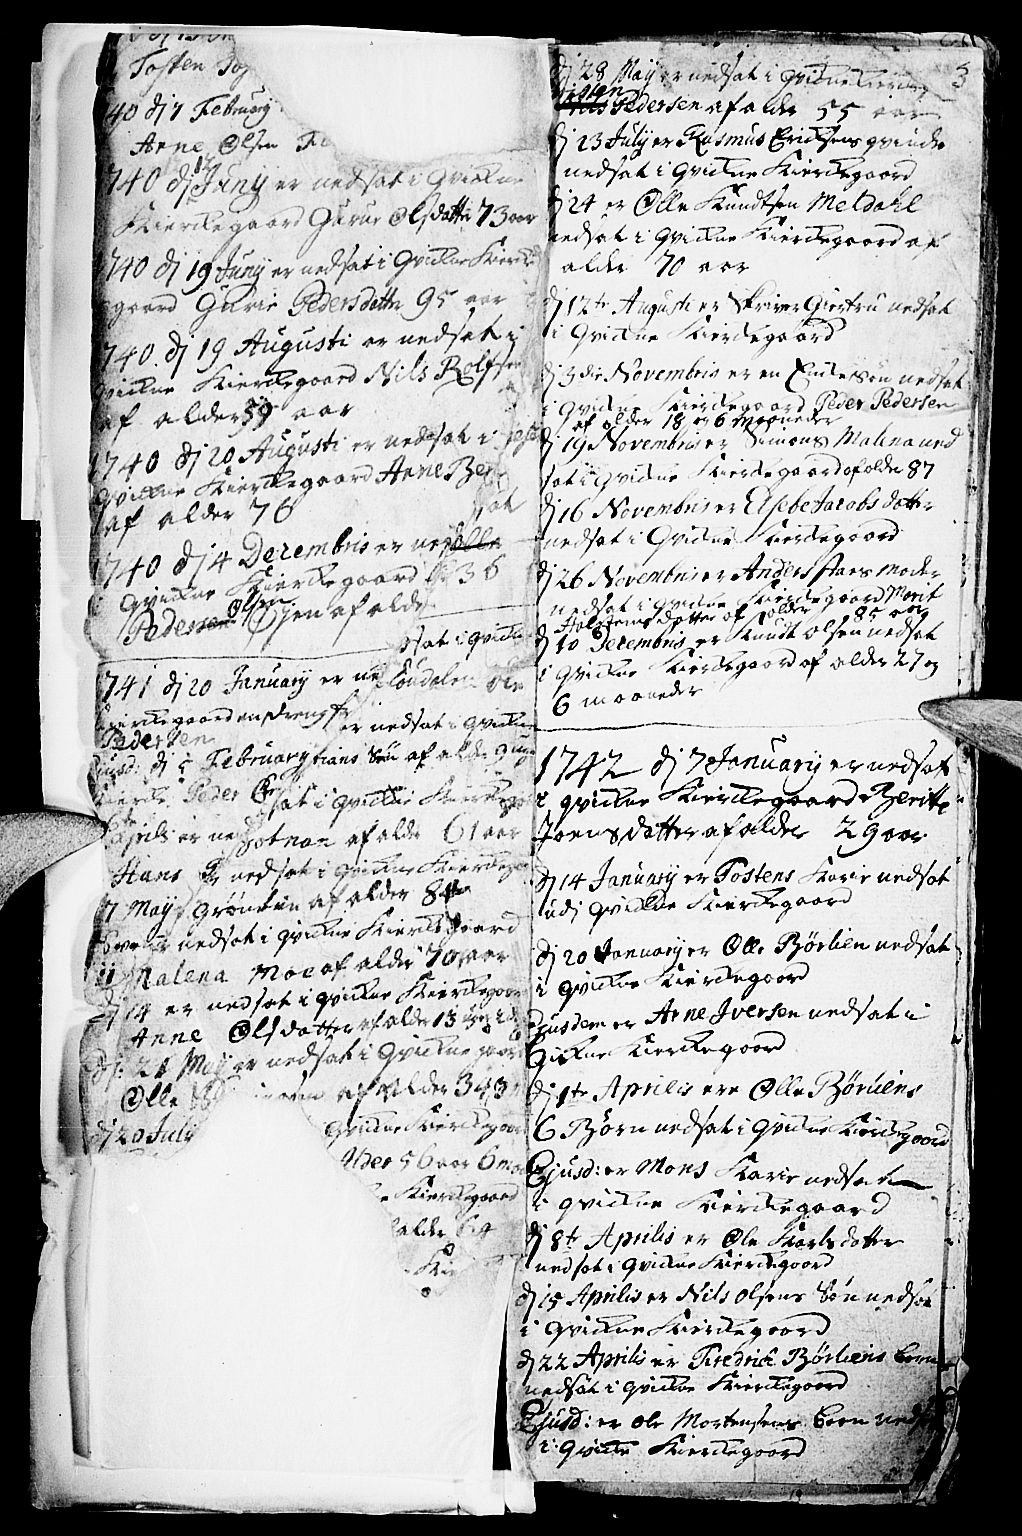 SAH, Kvikne prestekontor, Parish register (official) no. 1, 1740-1756, p. 2-3